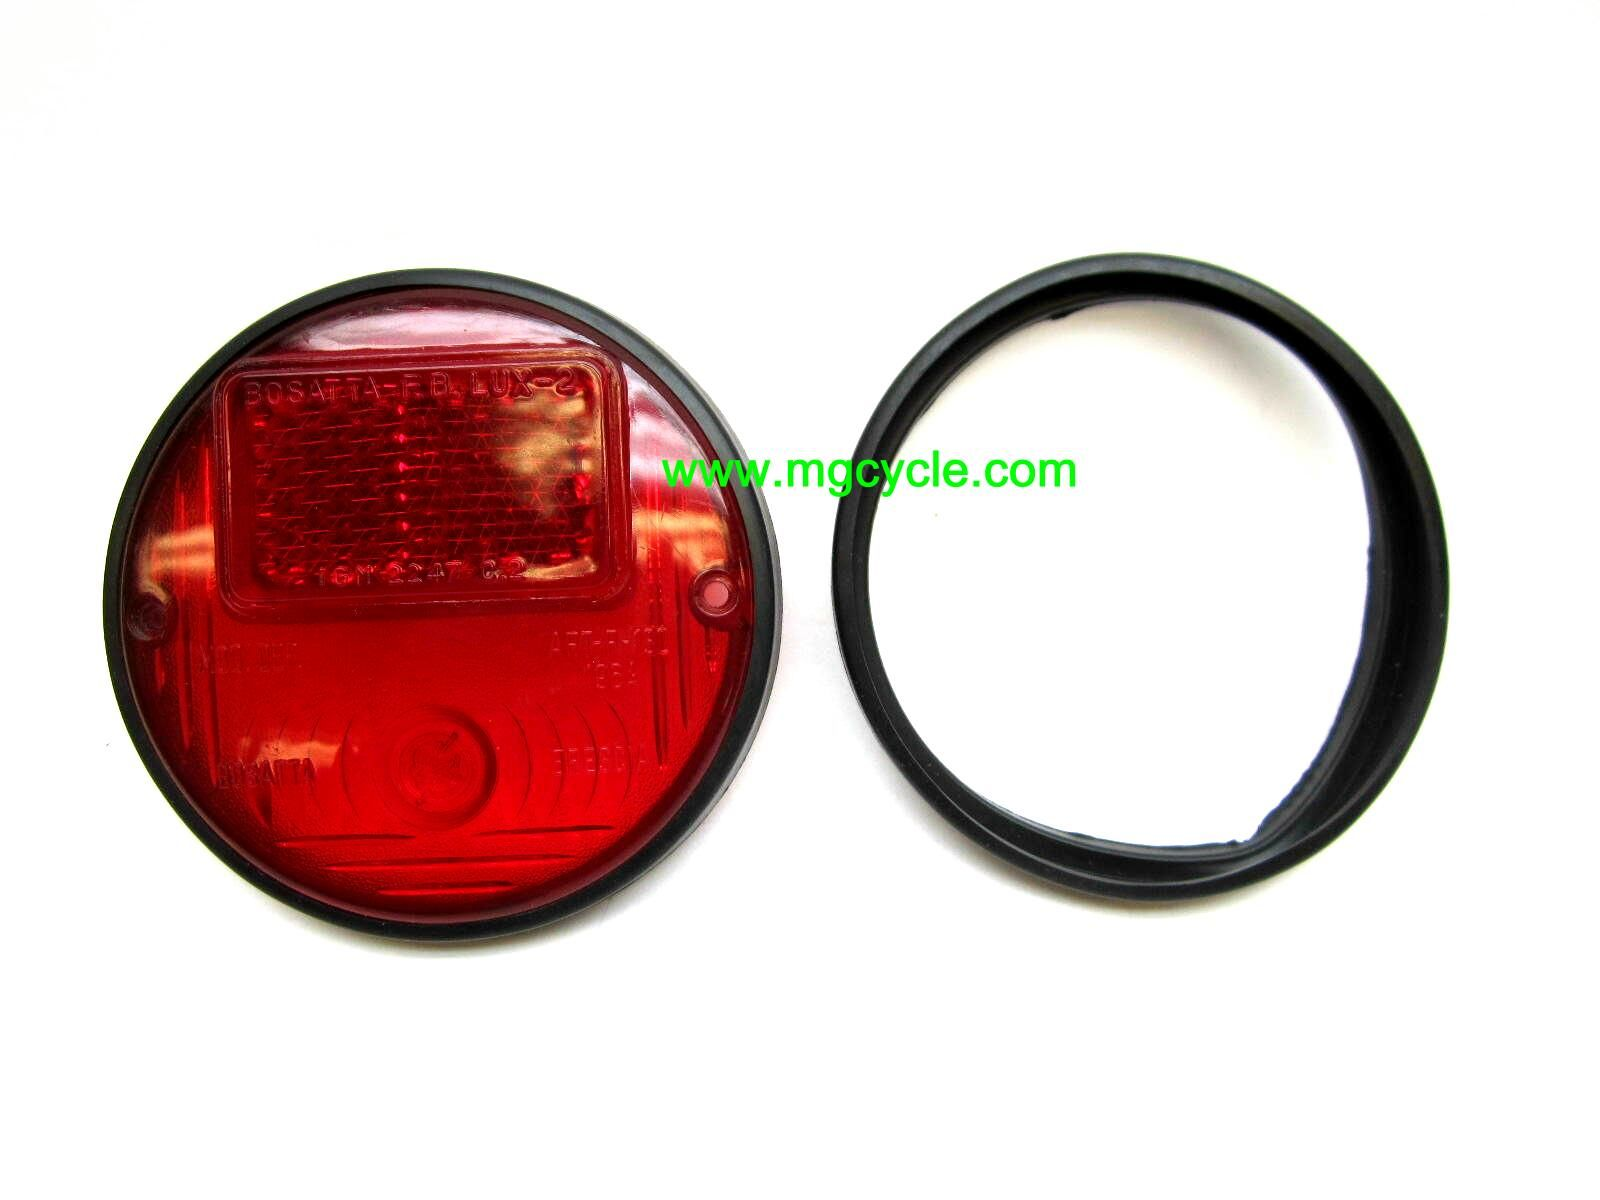 gasket for european version tail light lens